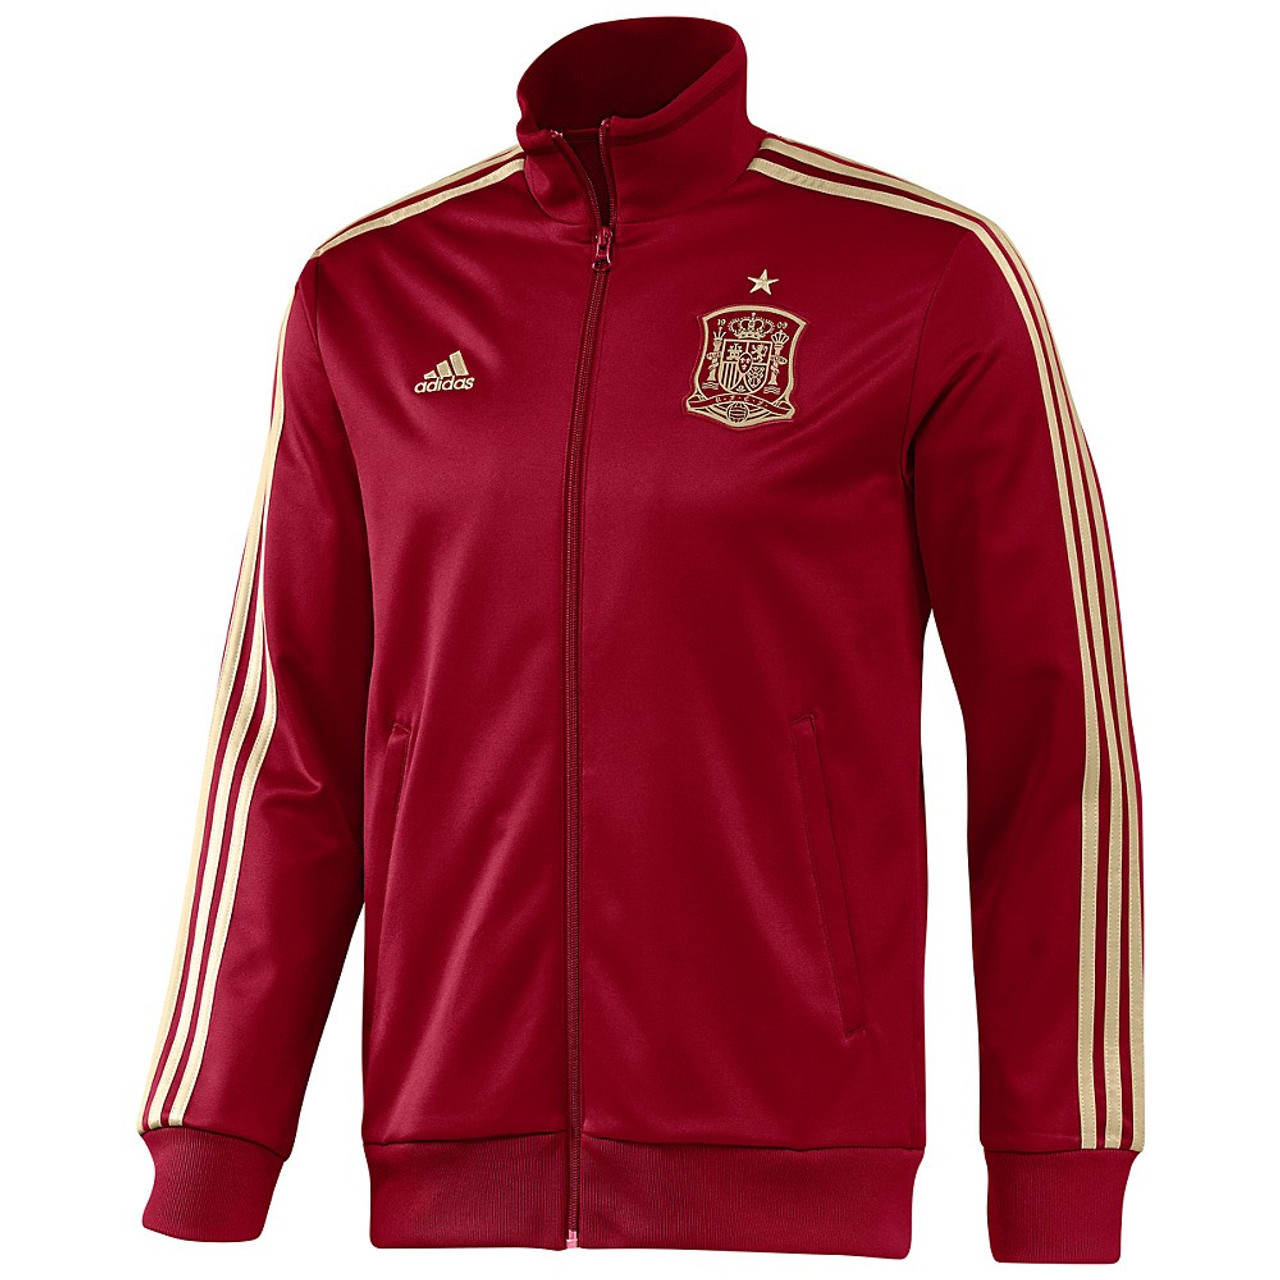 a7a647113 adidas Spain Track Jacket - Red Gold (1917) - ohp soccer